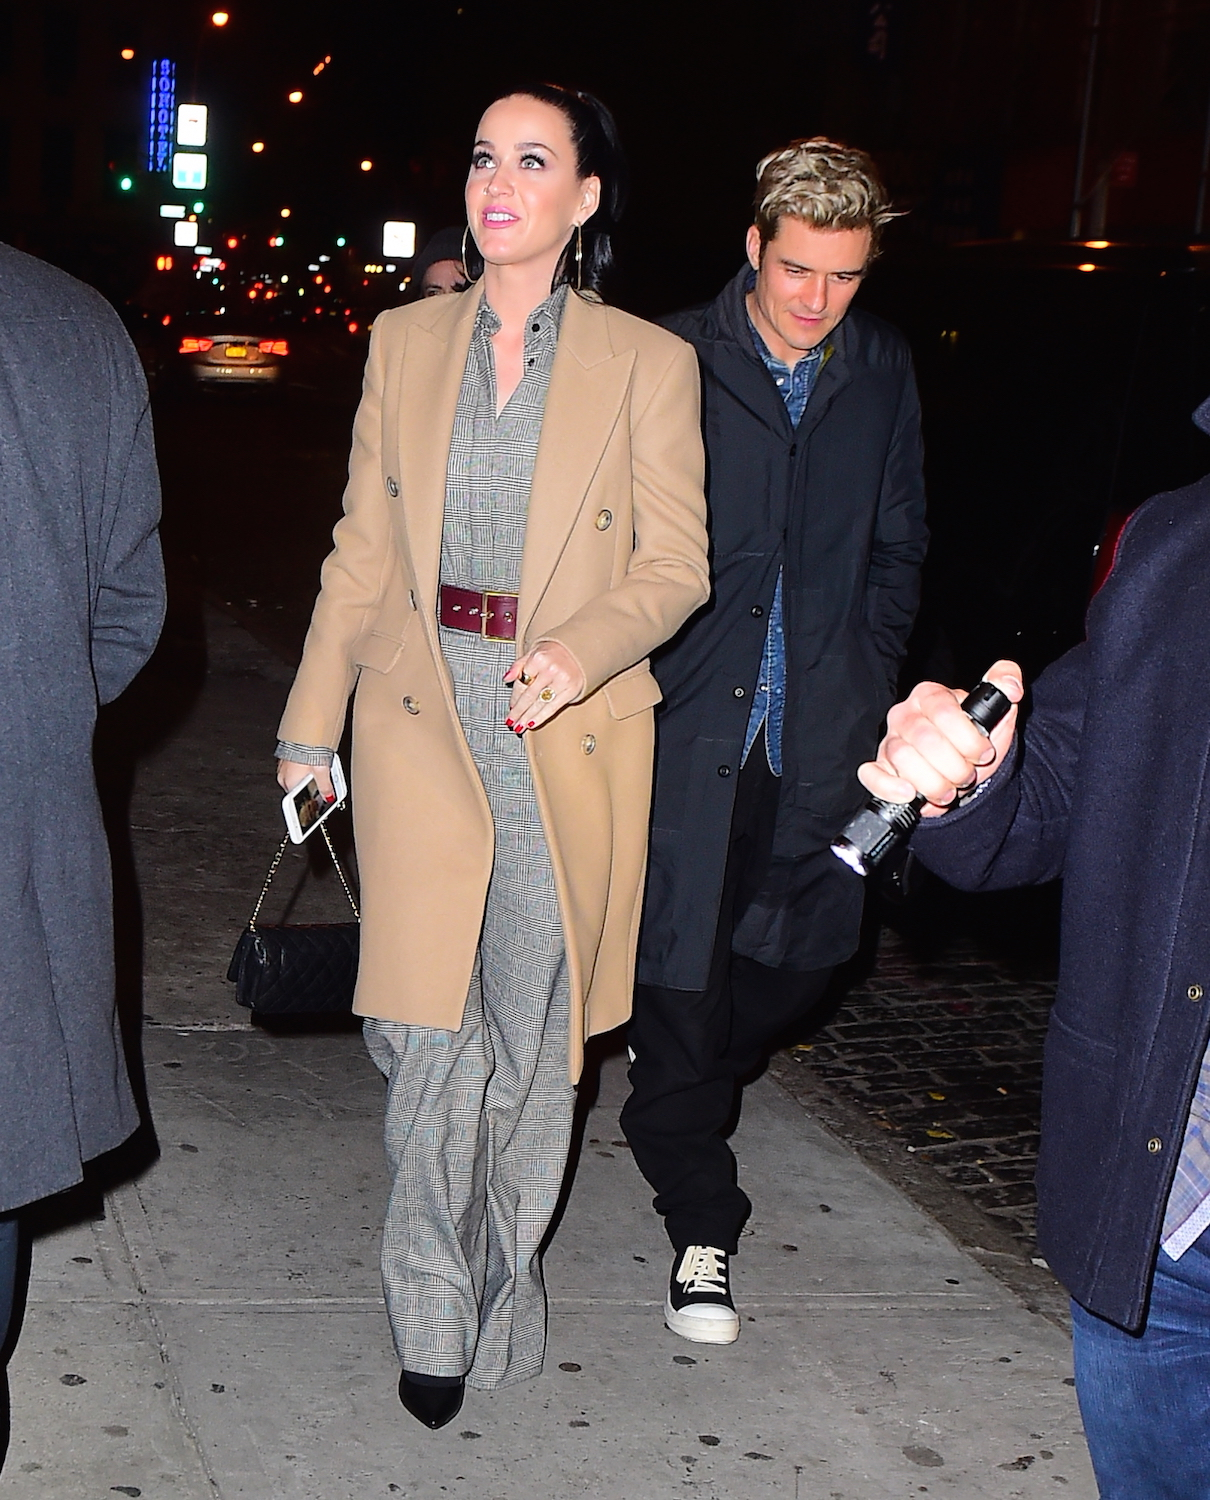 Orlando Bloom with Katy Perry wearing engagement r